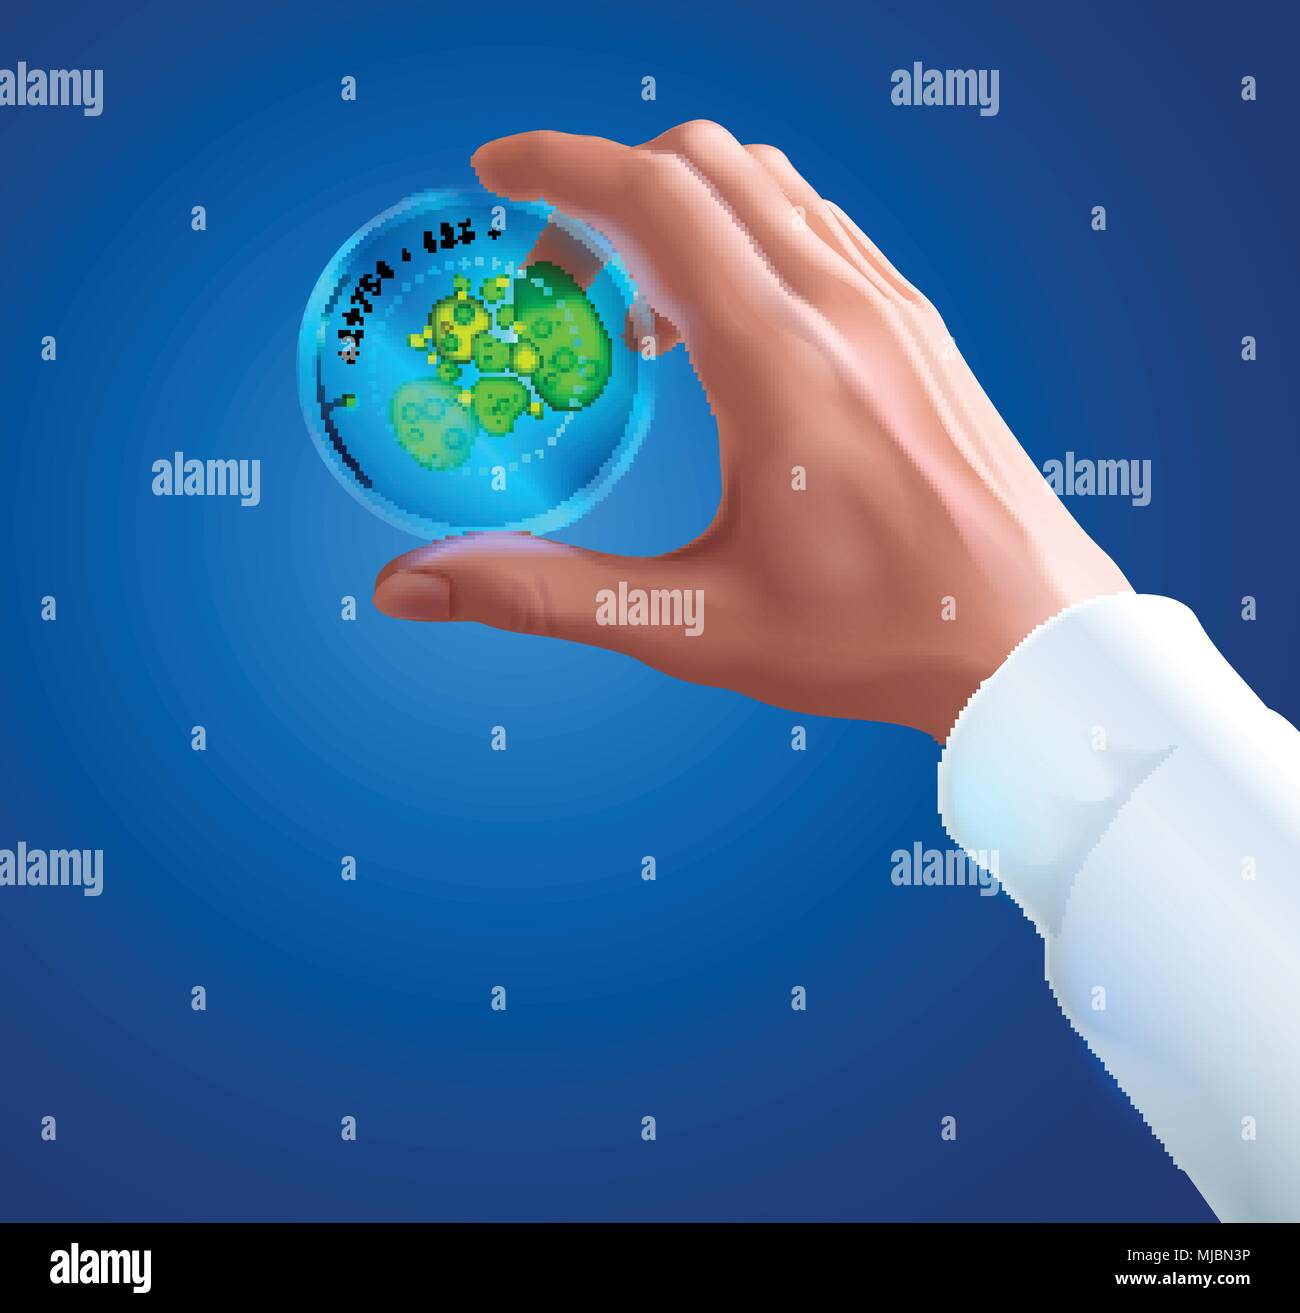 Hand of a scientist in white coat holding Petri dish with colony of bacteria or fungi. Biotechnology or Microbiology concept. Science experiment. Roun - Stock Vector